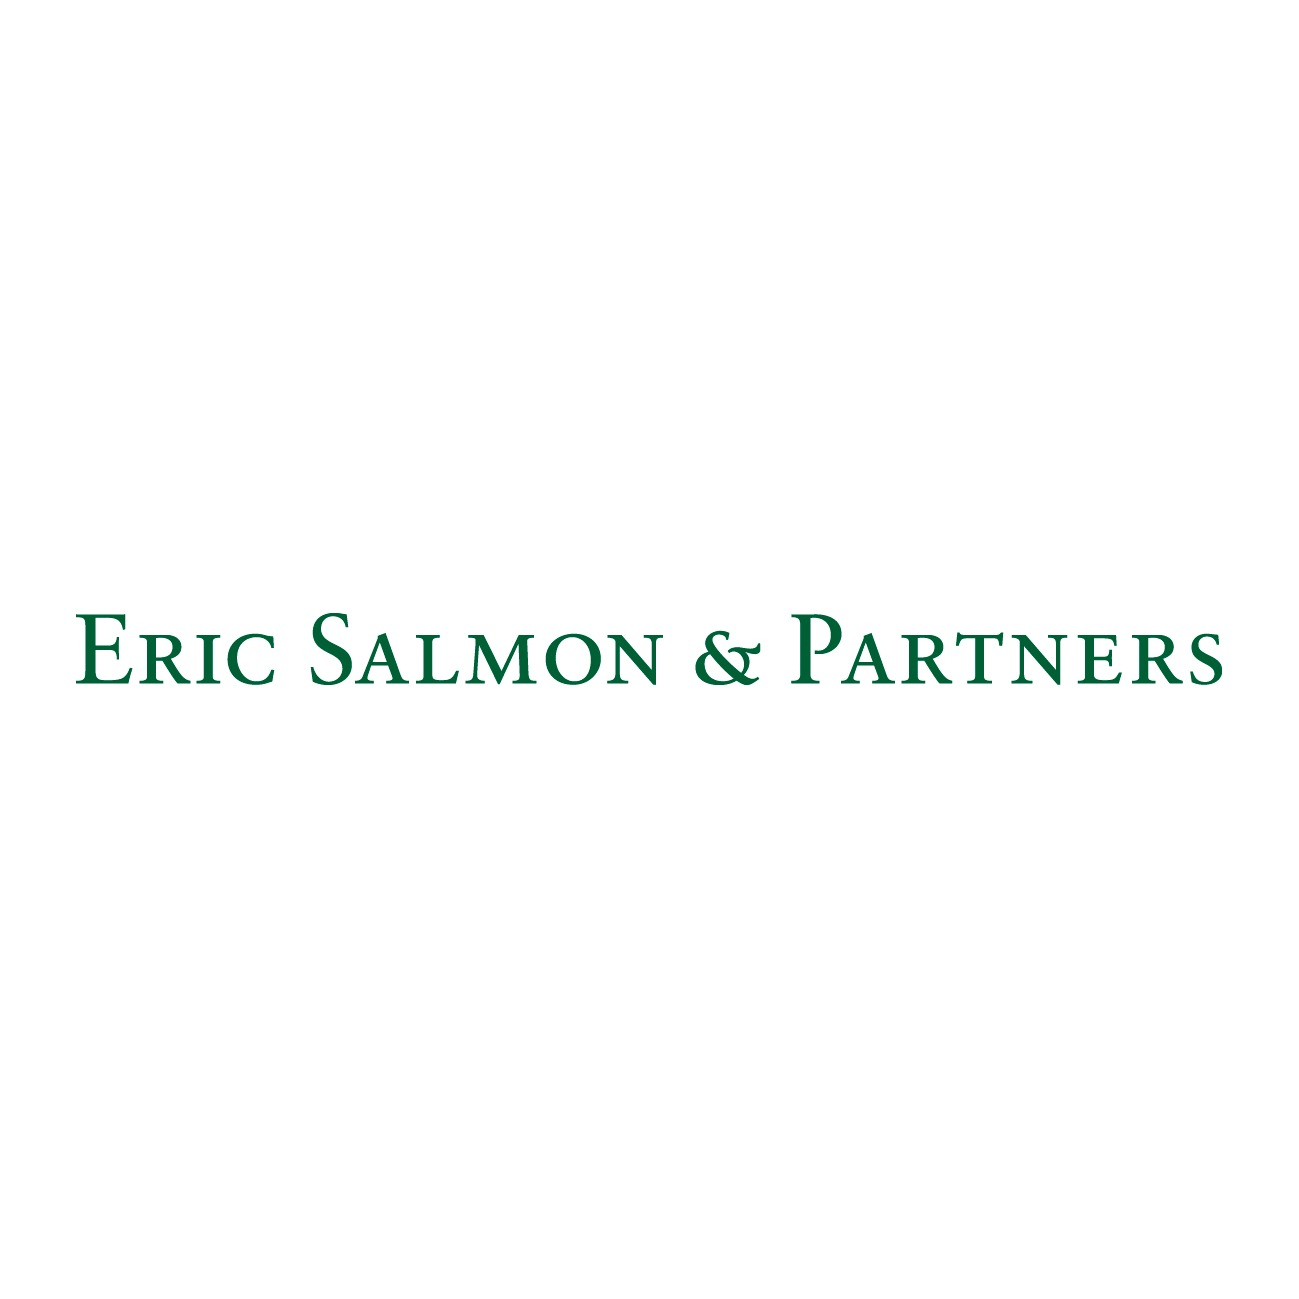 the Eric Salmon & Partners logo.